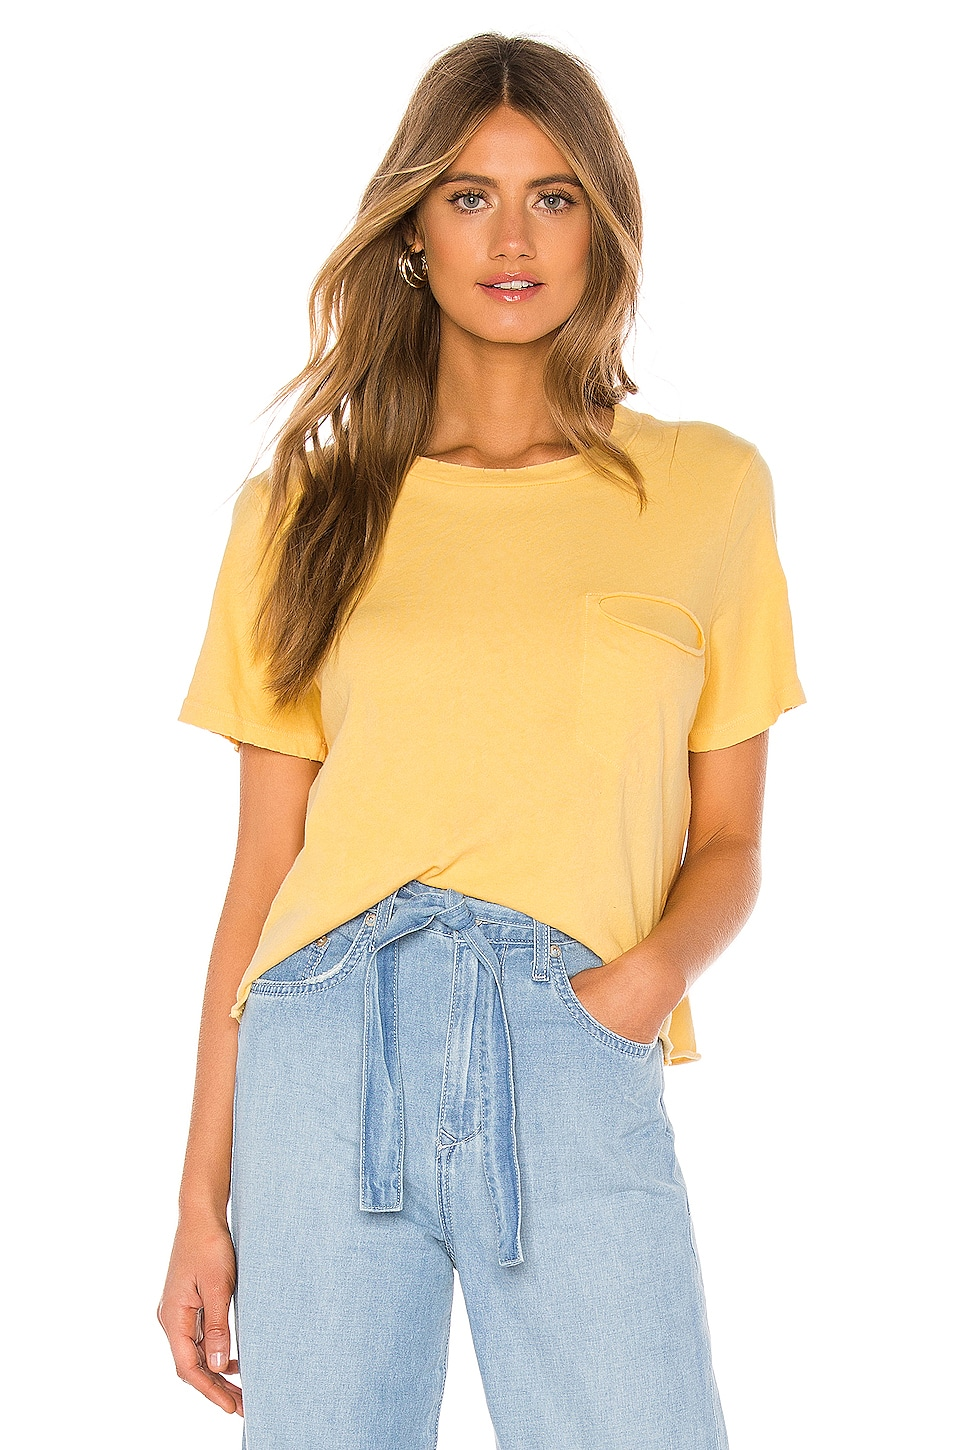 LA Made Cydney Distressed Pocket Tee in Mellow Yellow